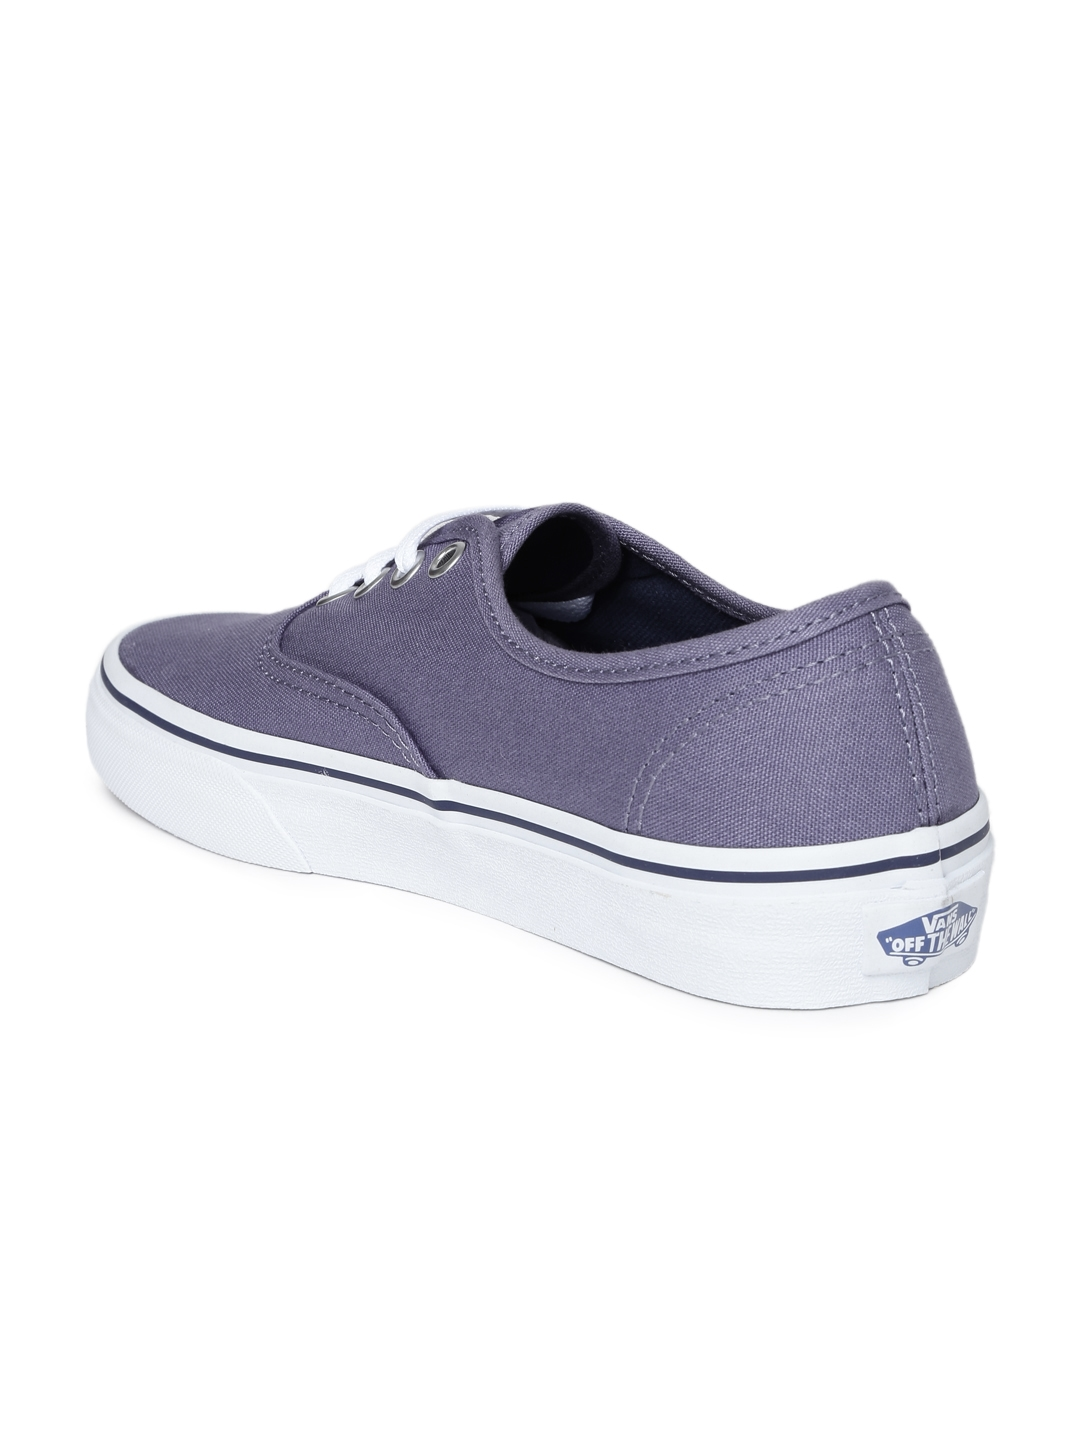 a80a5a6203 Buy Vans Unisex Purple Authentic Casual Shoes - Casual Shoes for ...